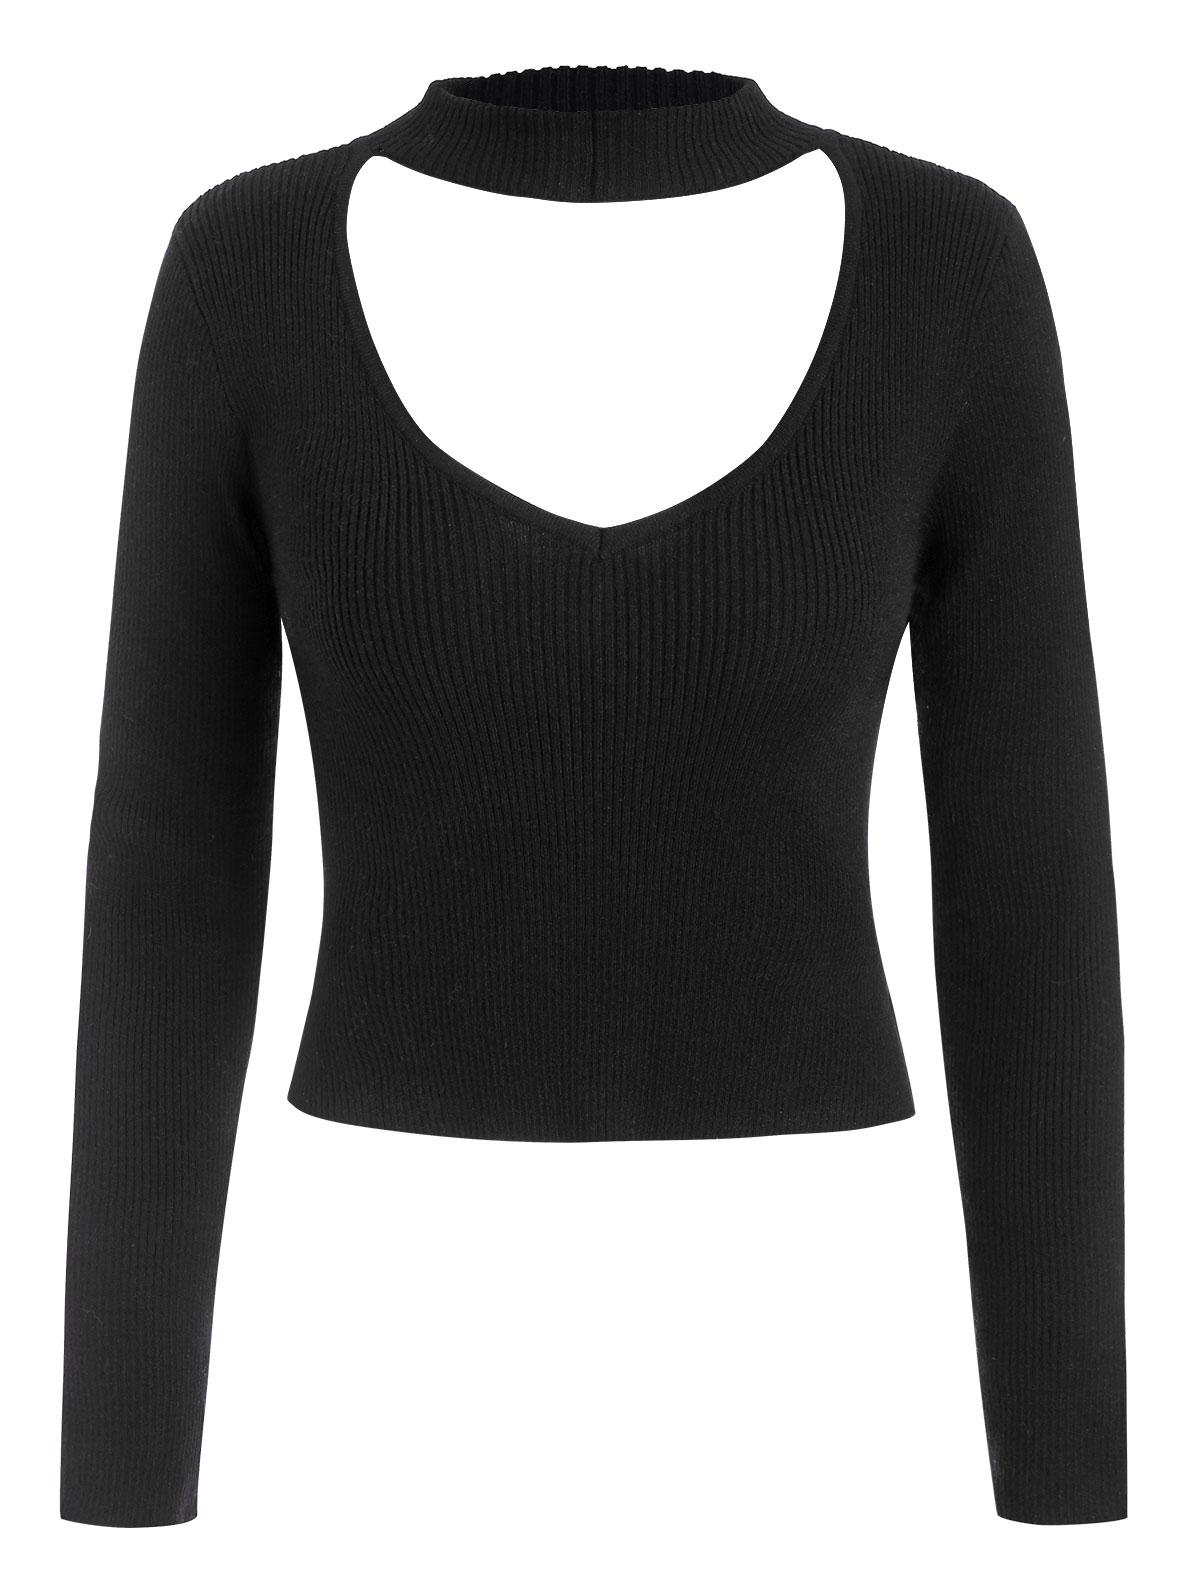 Ribbed Fitted Cutout Choker Sweater